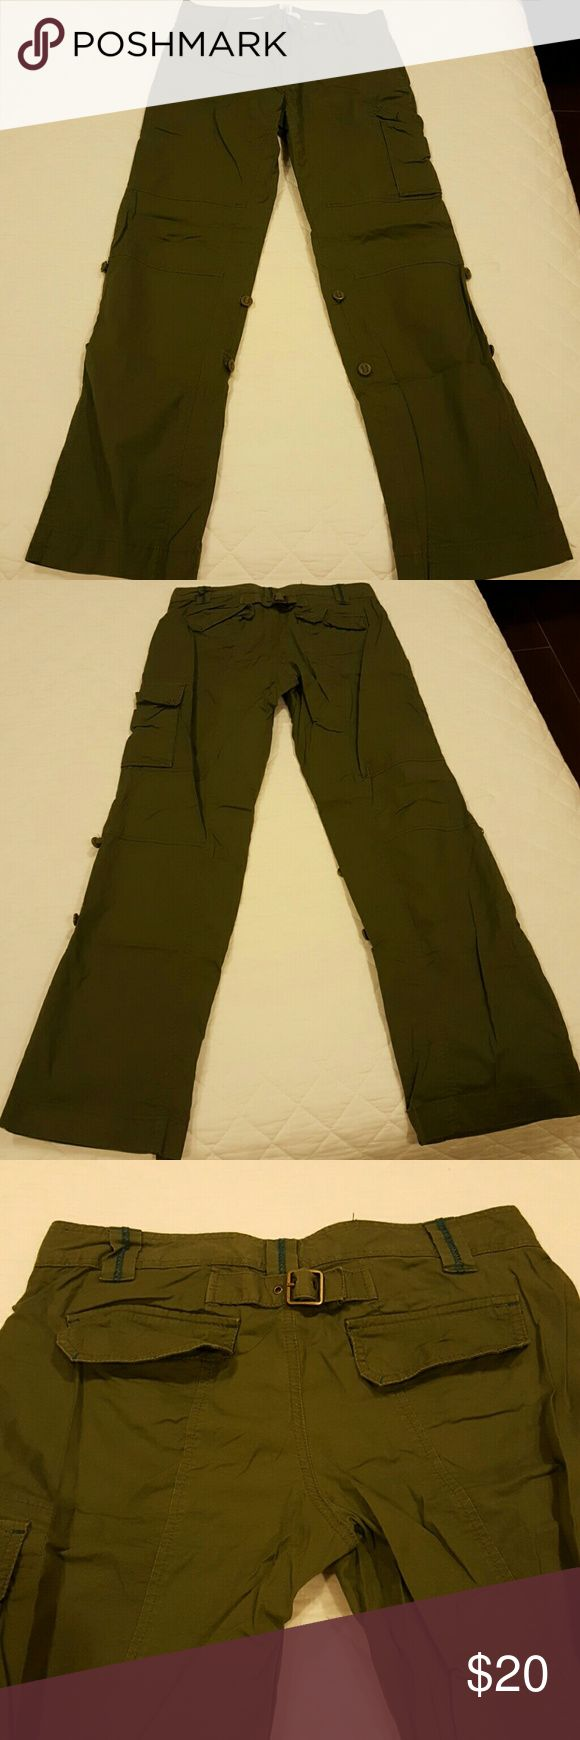 Old Navy Cargo Pants Military green cargo pants. Used a few times. However pants are in great condition. No damage. Old Navy Pants